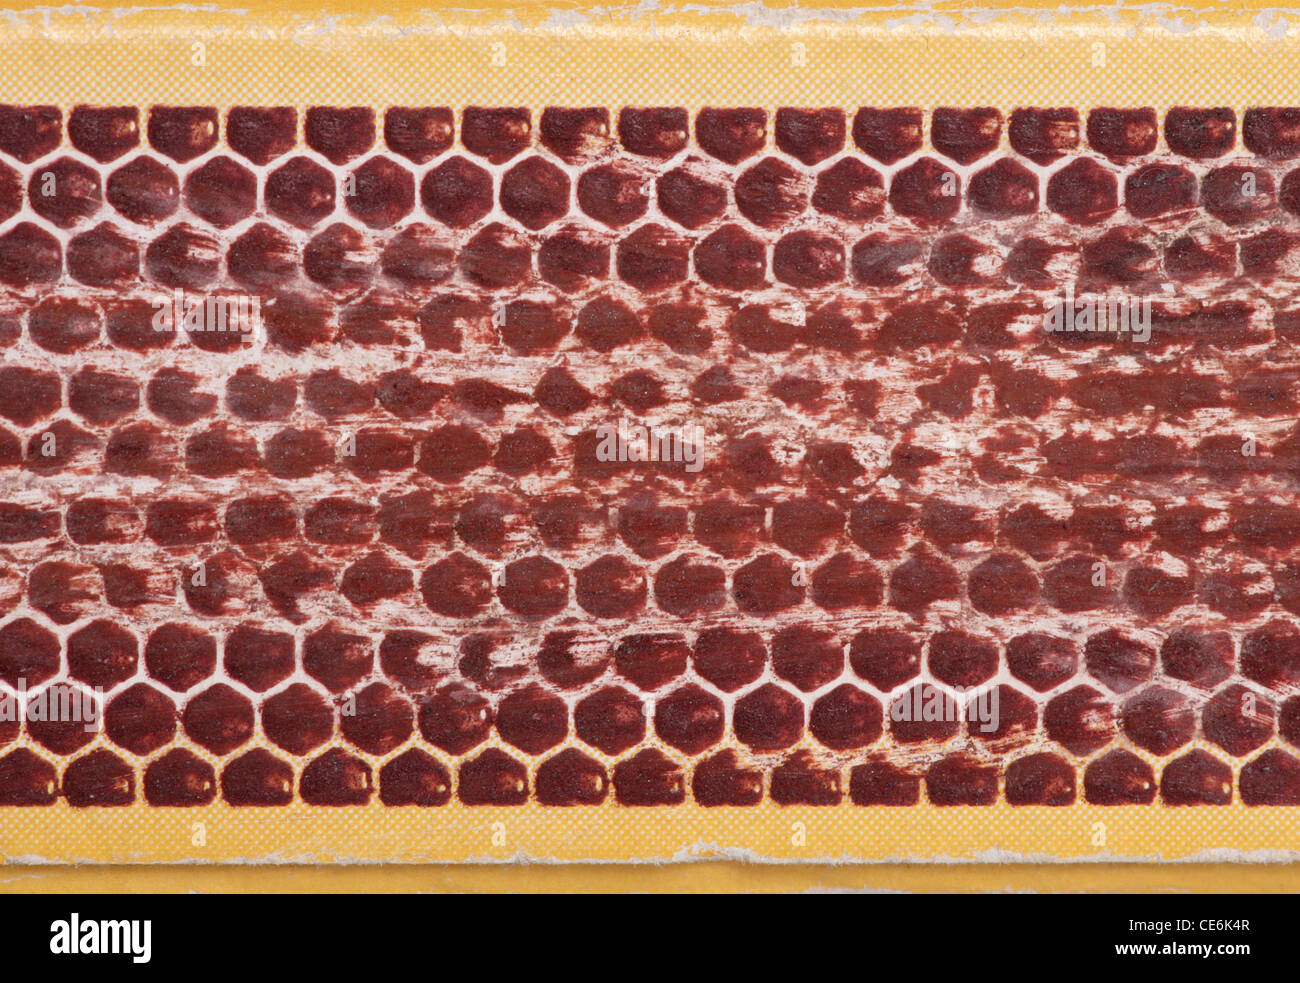 Match box abstract background texture - Stock Image